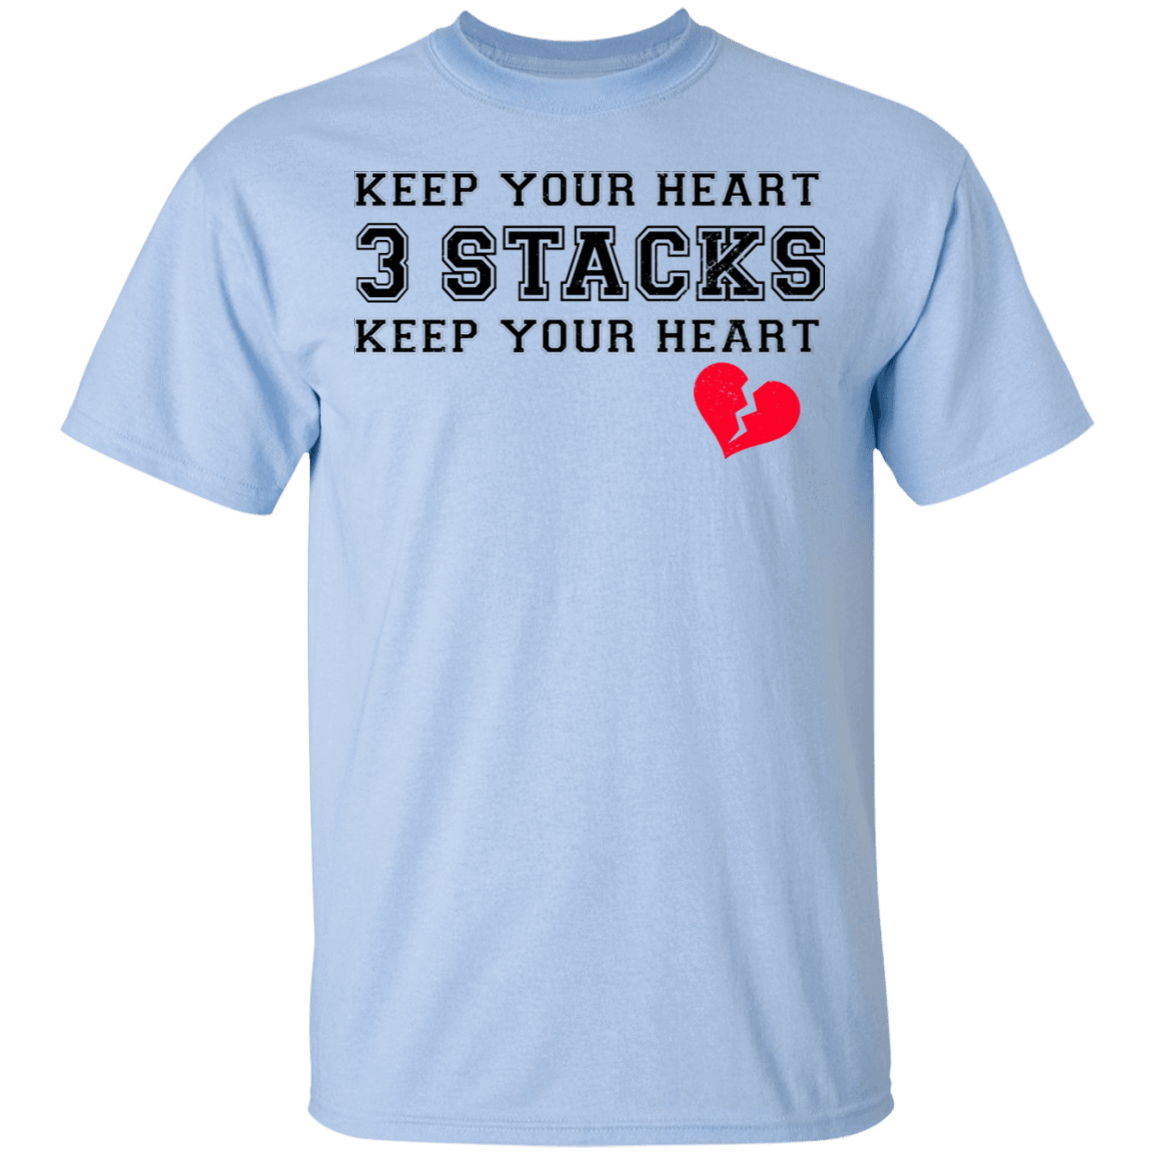 Keep Your Heart 3 Stacks T-Shirts, Hoodies 22-9800-80183506-47430 - Tee Ript